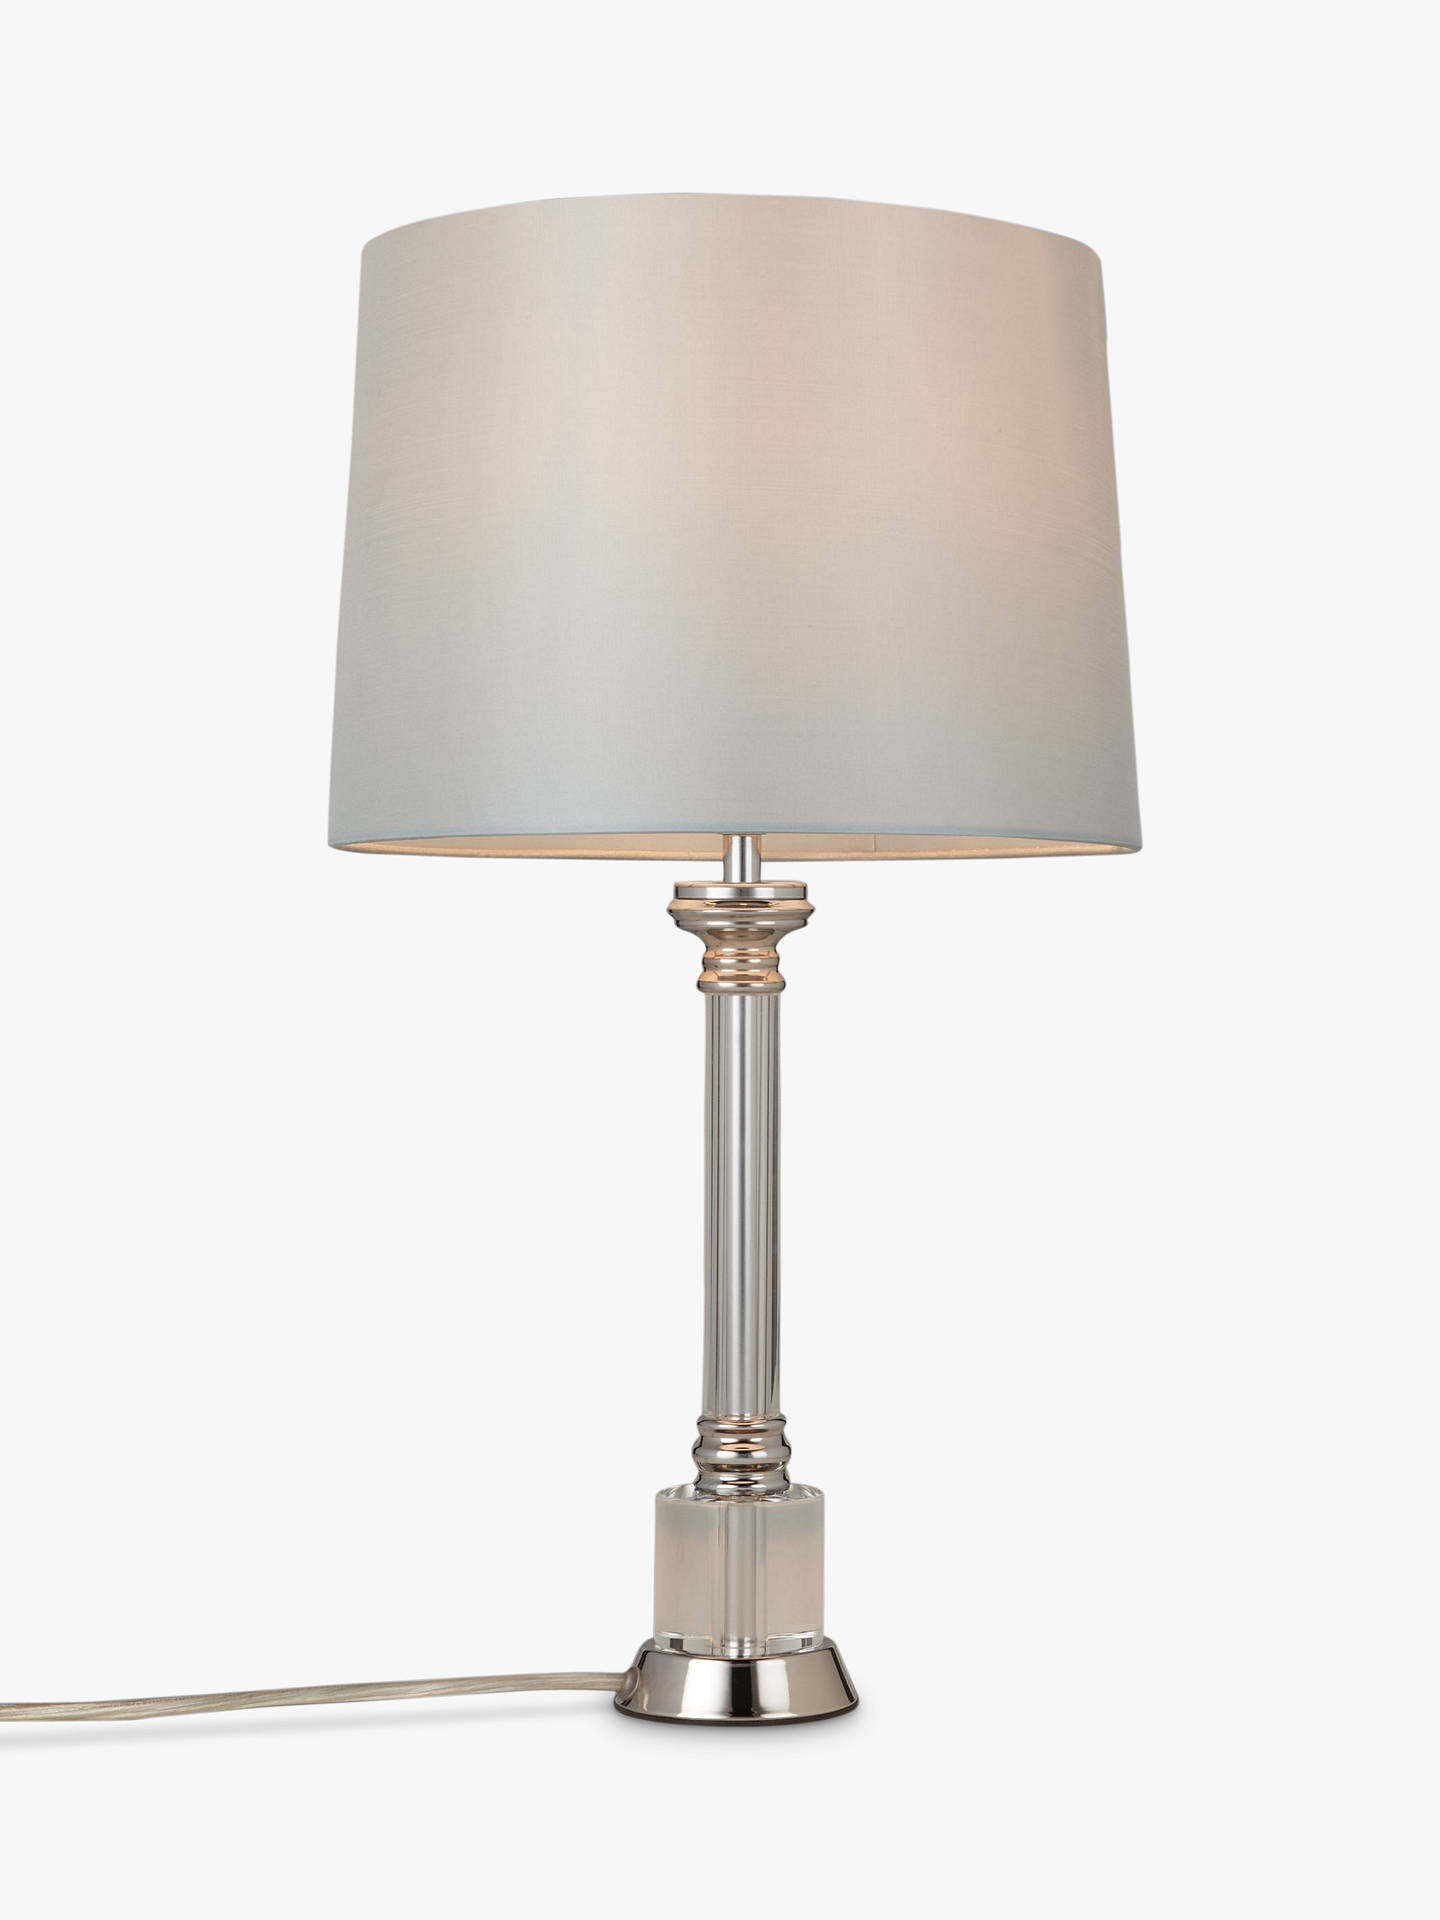 John Lewis Clayton Base With Gemma Shade Table Lamp Grey Duck Egg